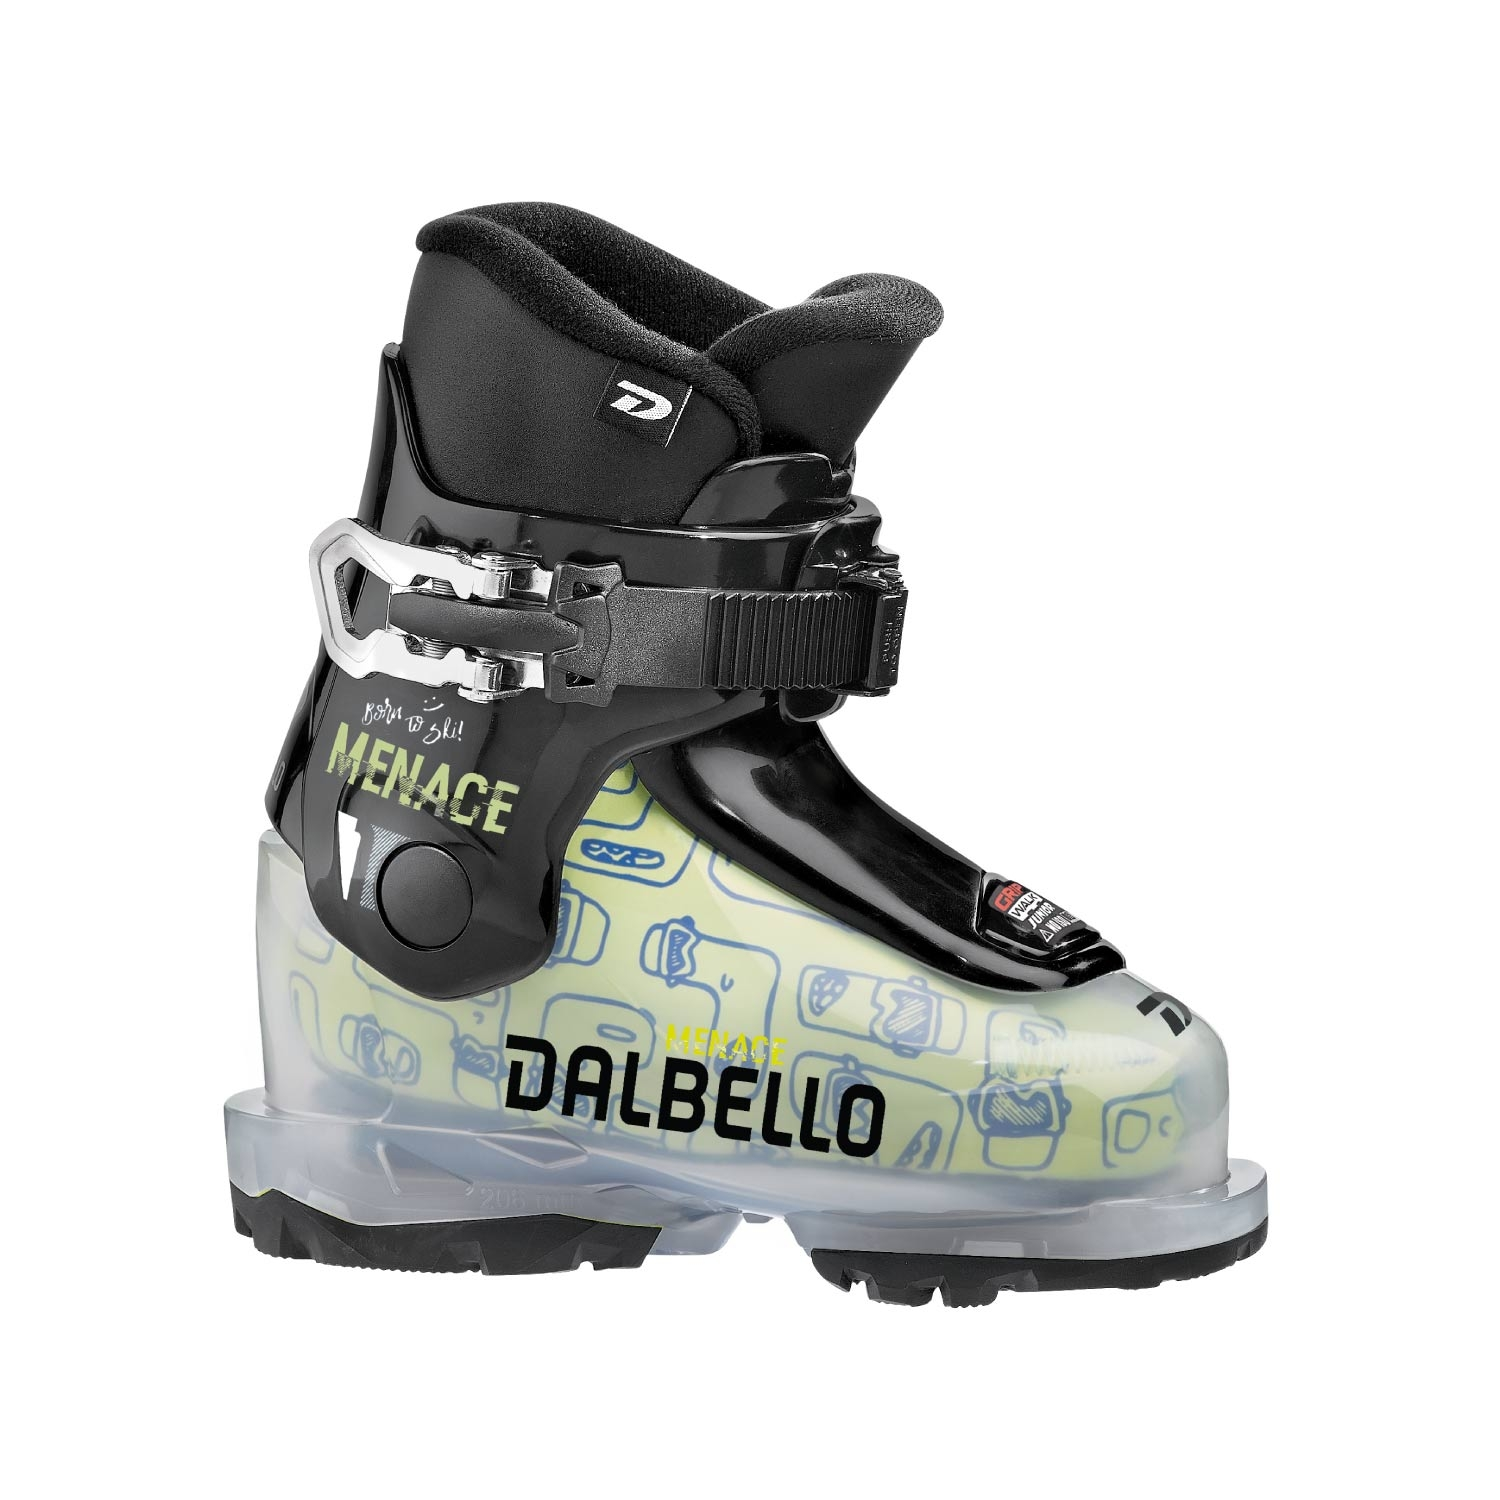 Dalbello Menace 1 0 Ski Boots Transparent/Black 2021